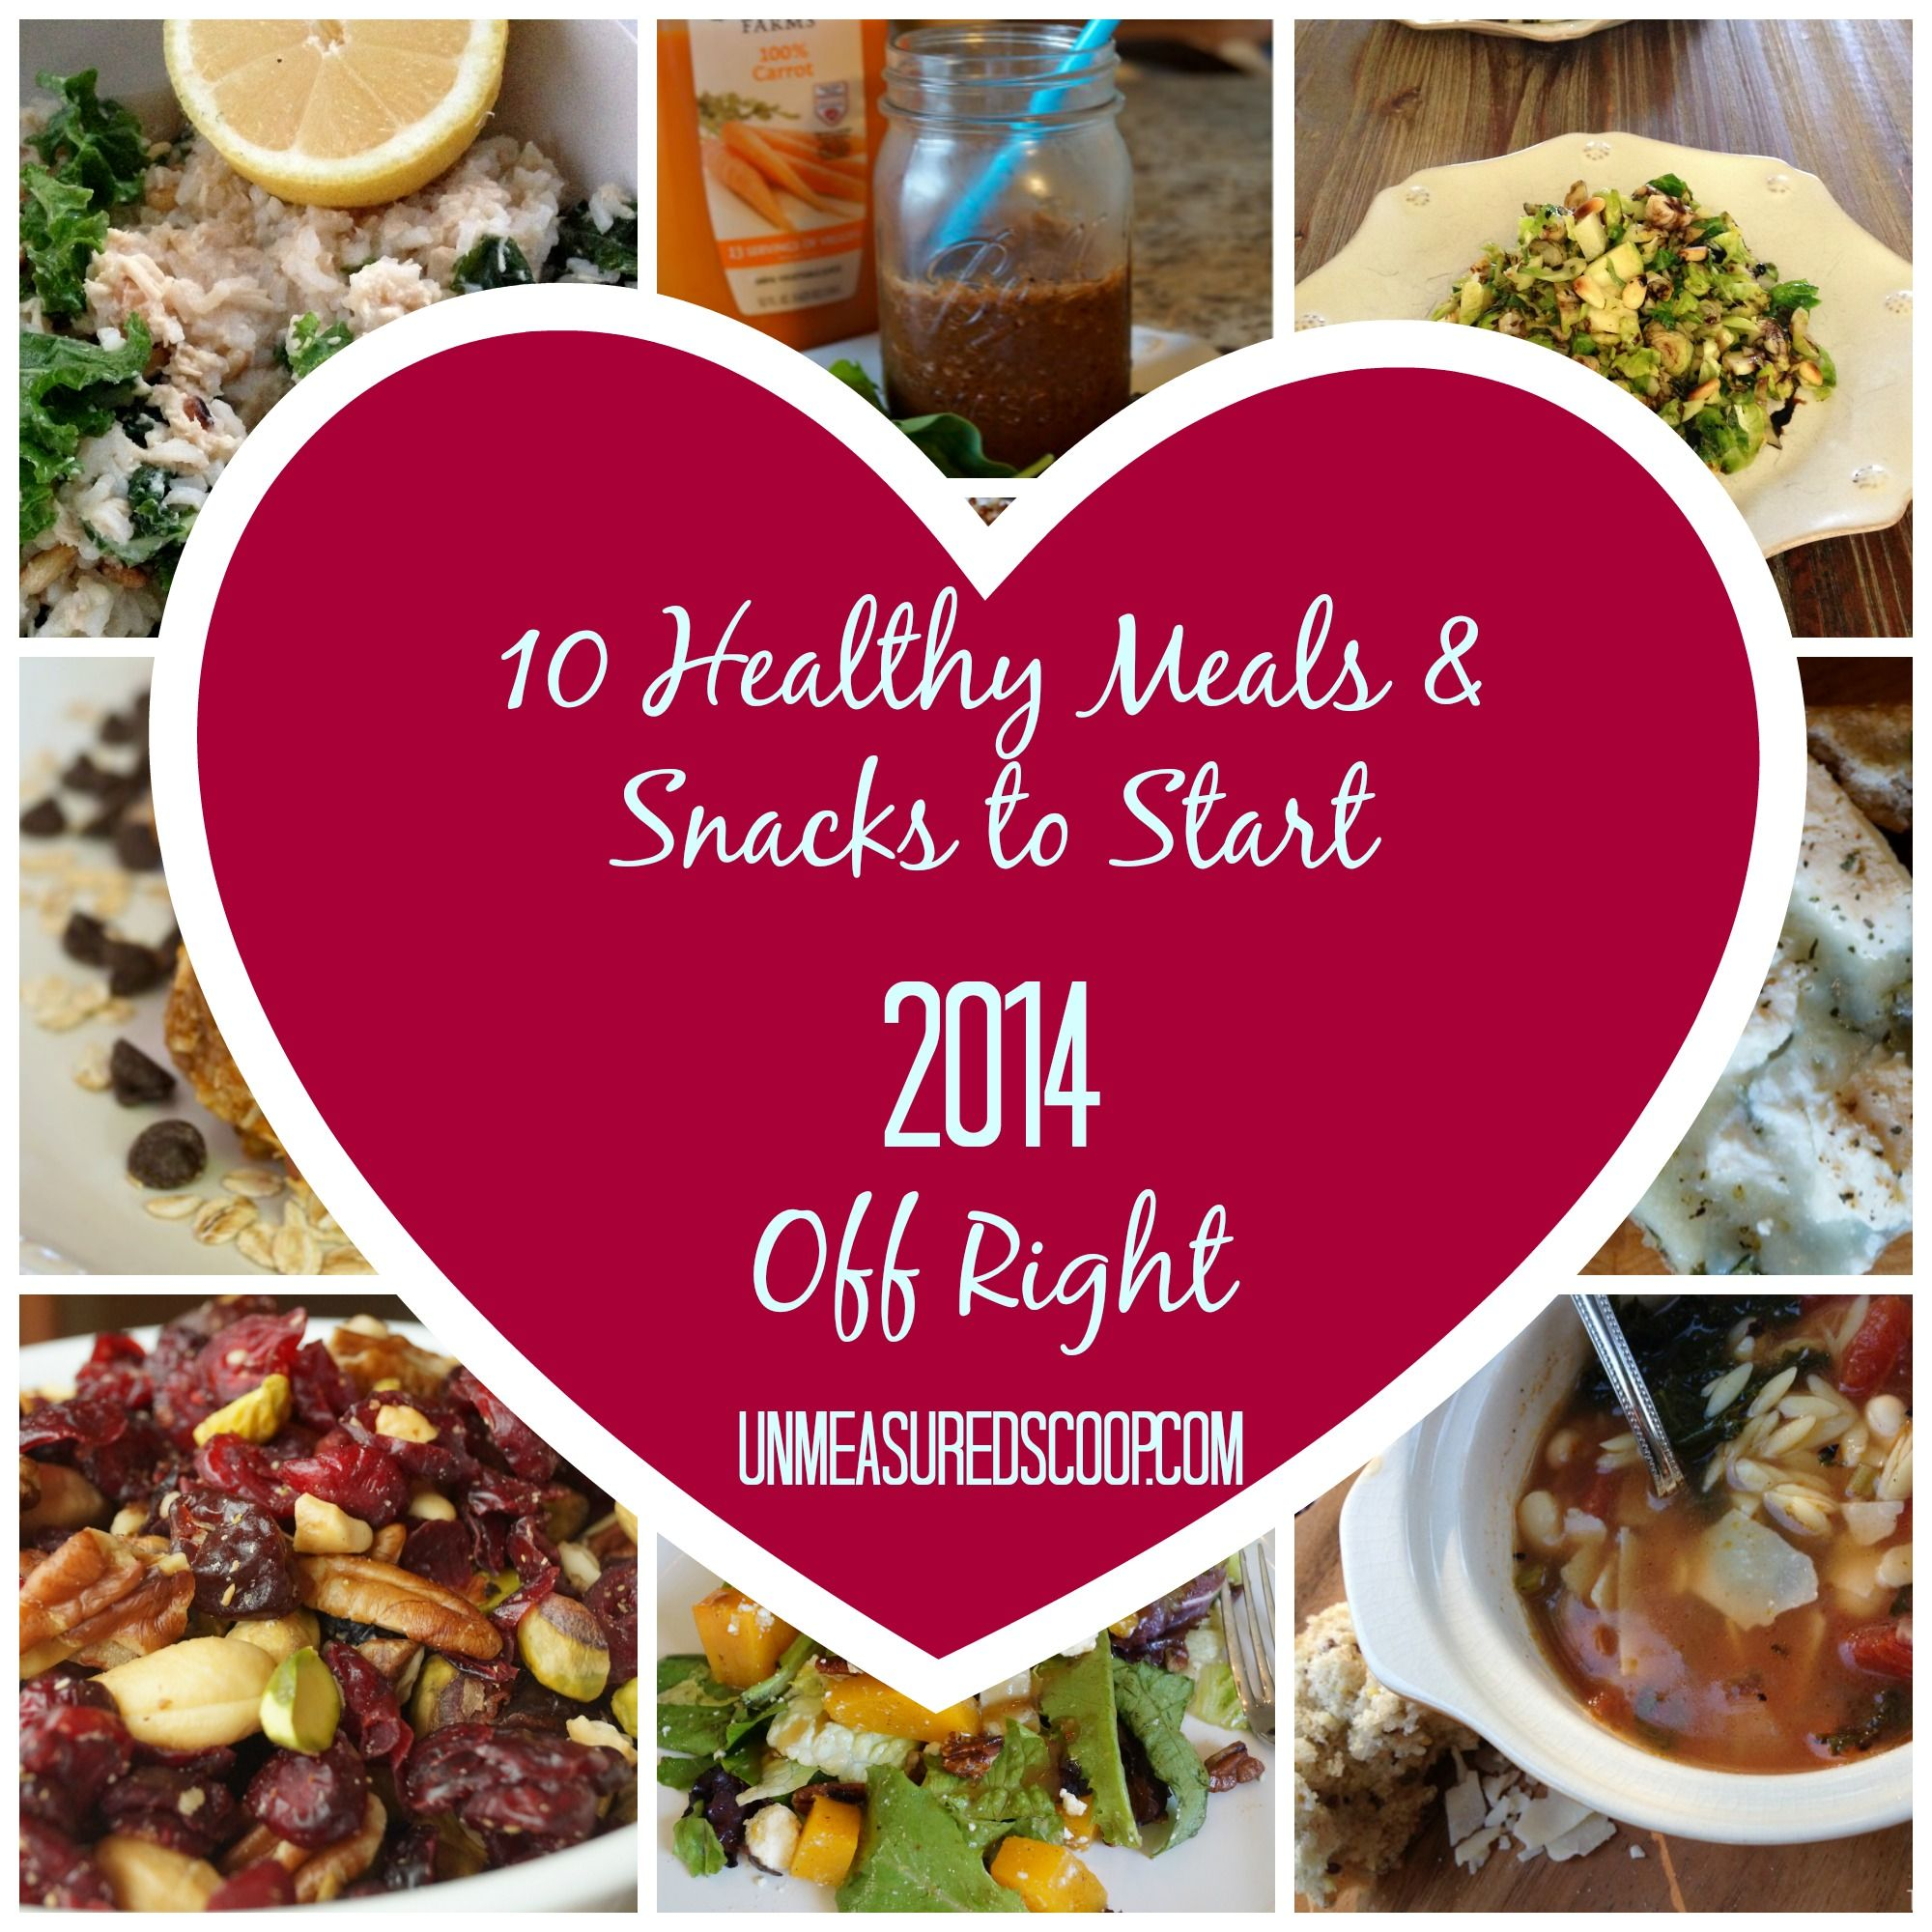 10 Healthy Meals & Snacks to Start 2014 Off Right